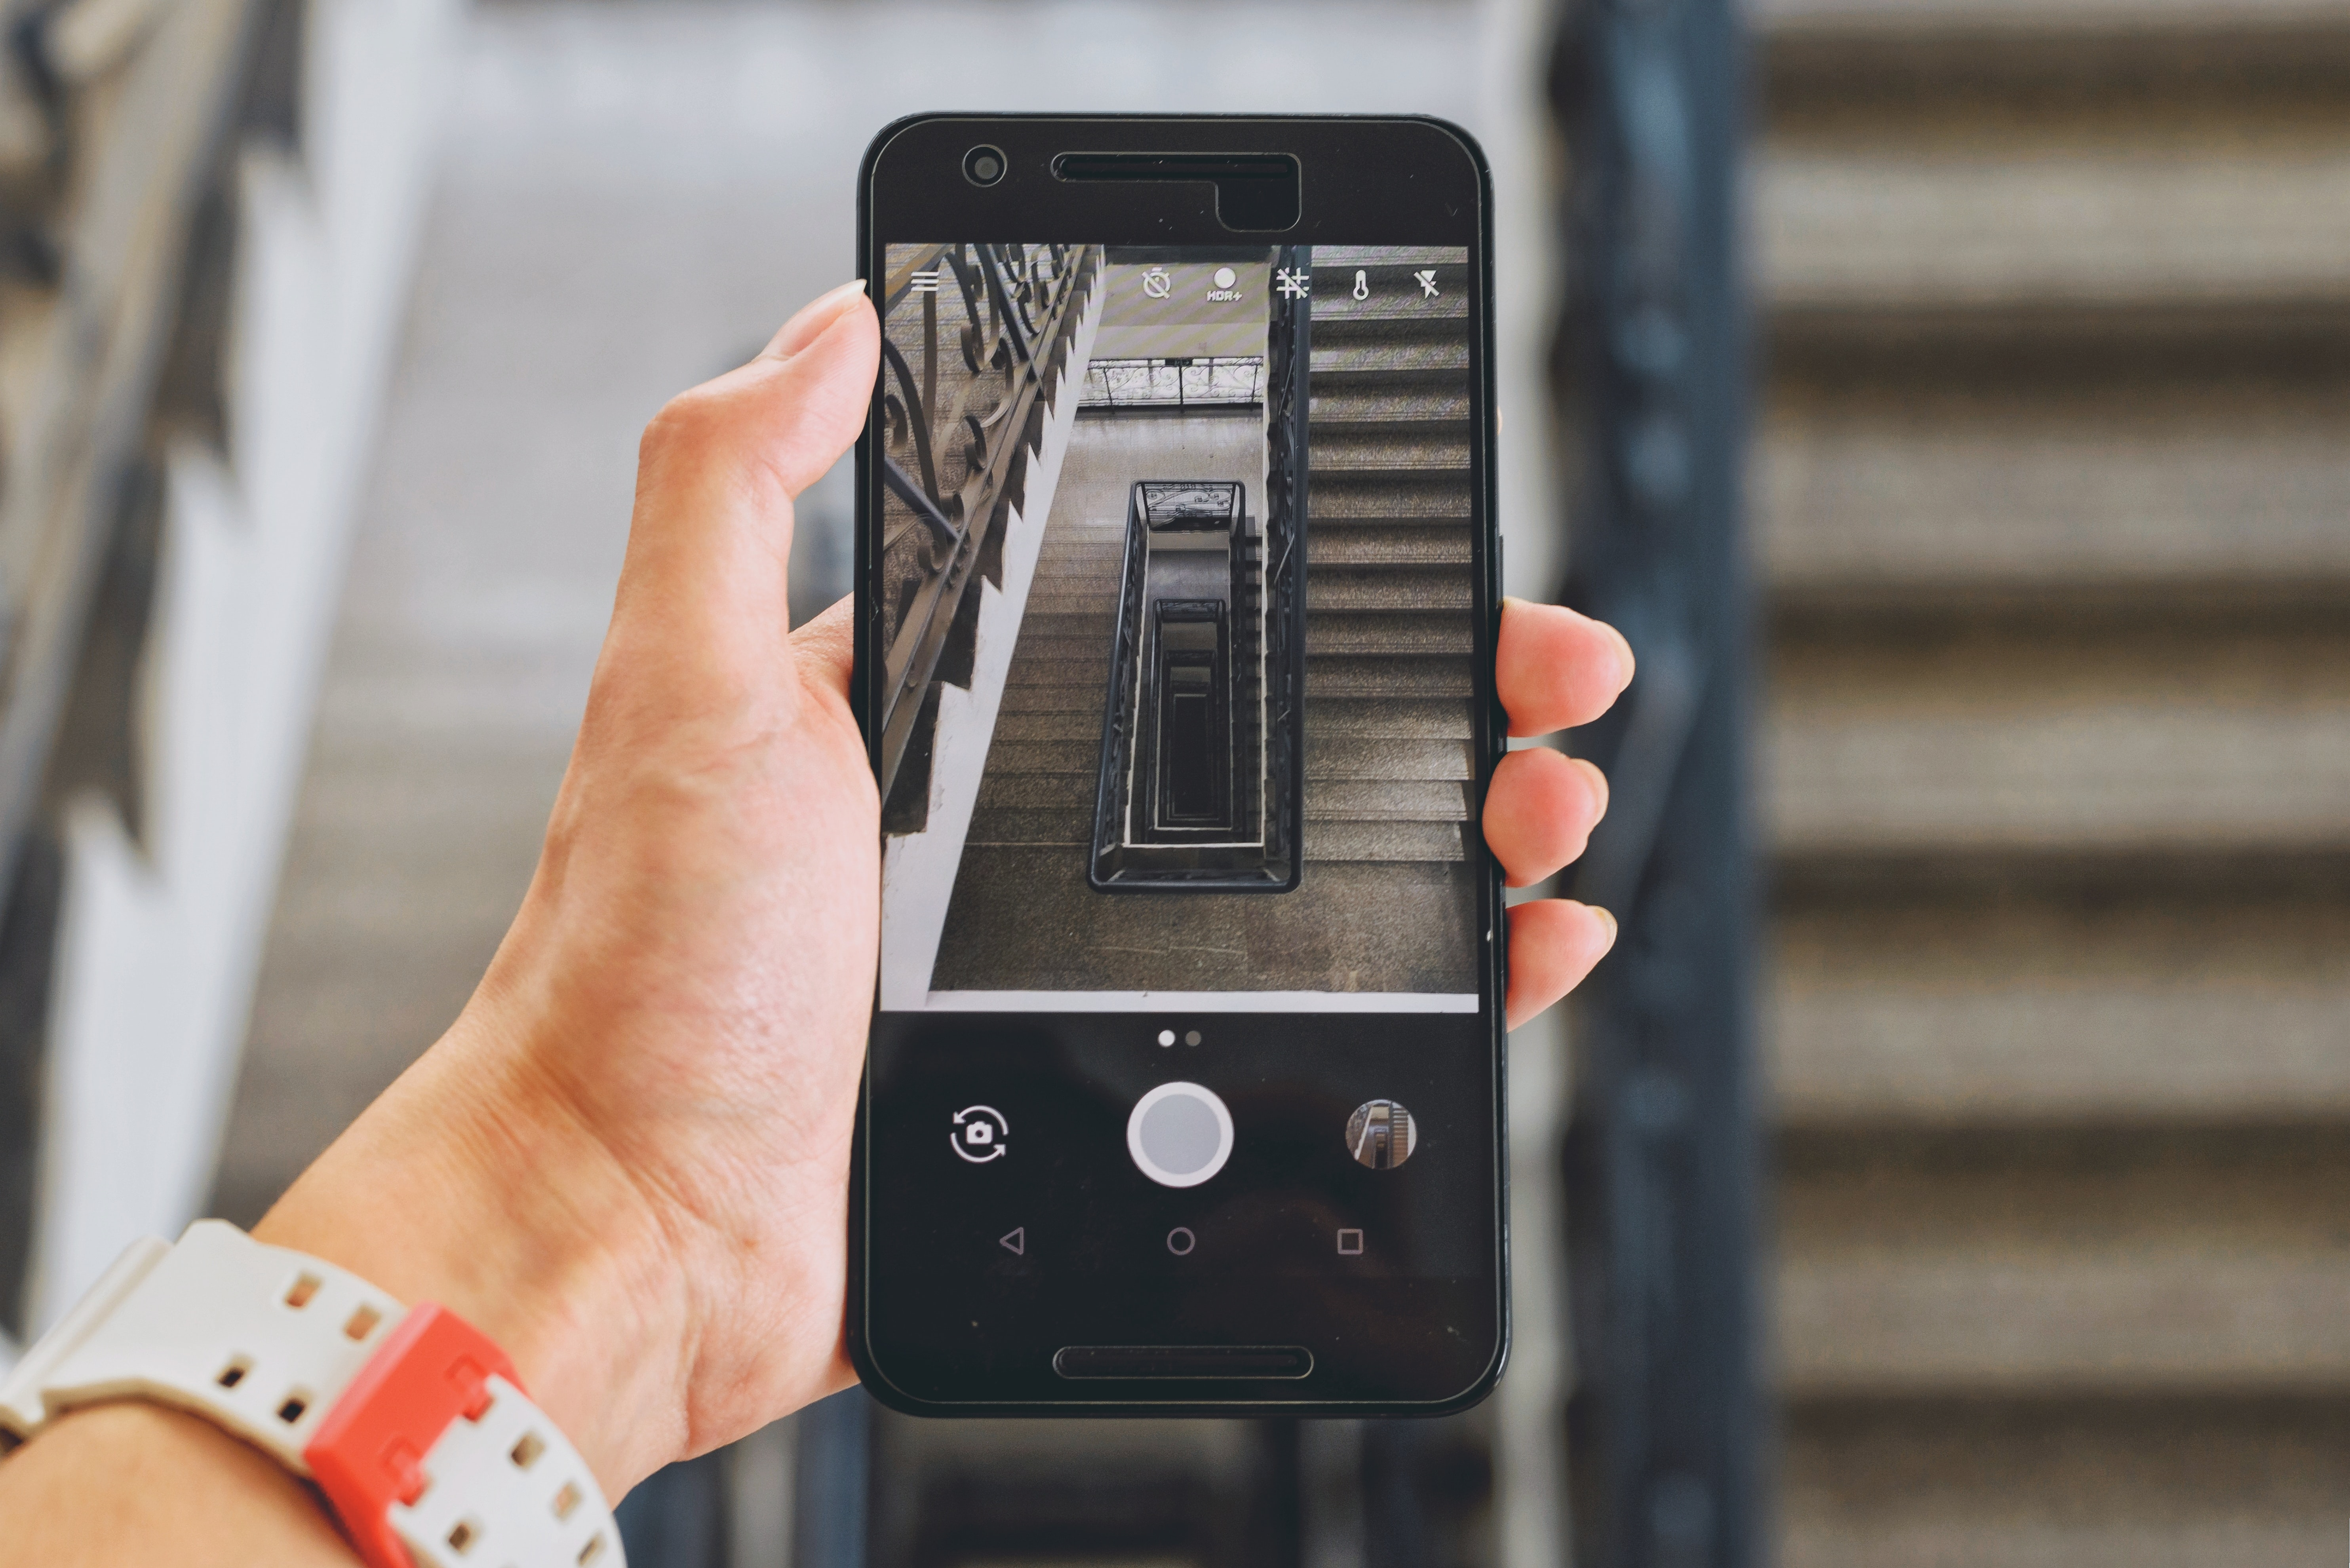 A person holding a smartphone with its camera pointed down a stairwell